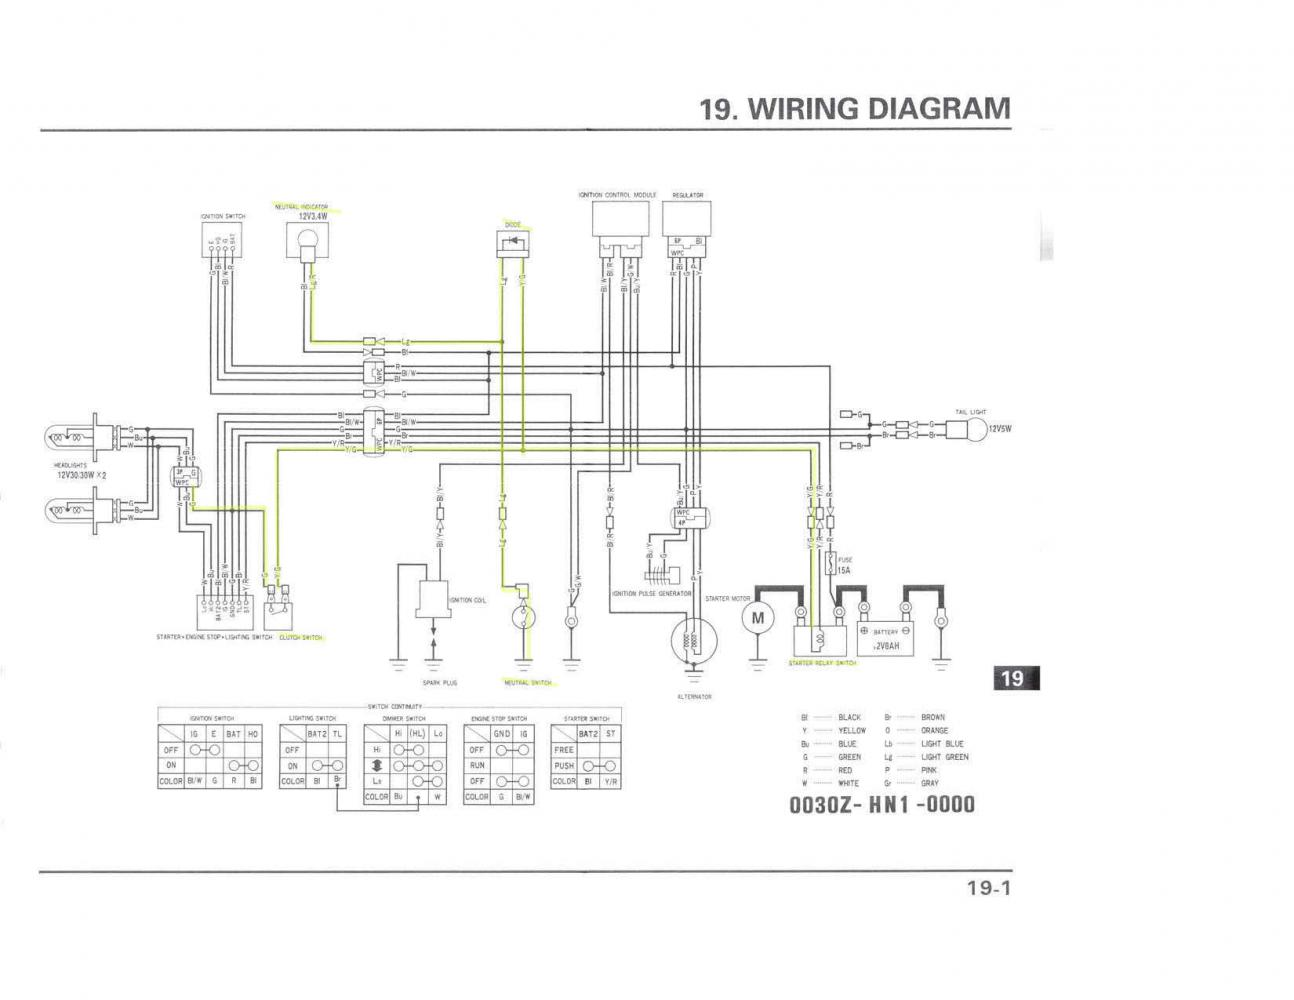 Wiring Diagram For 2001 400ex - Diagram Schematic Ideas on